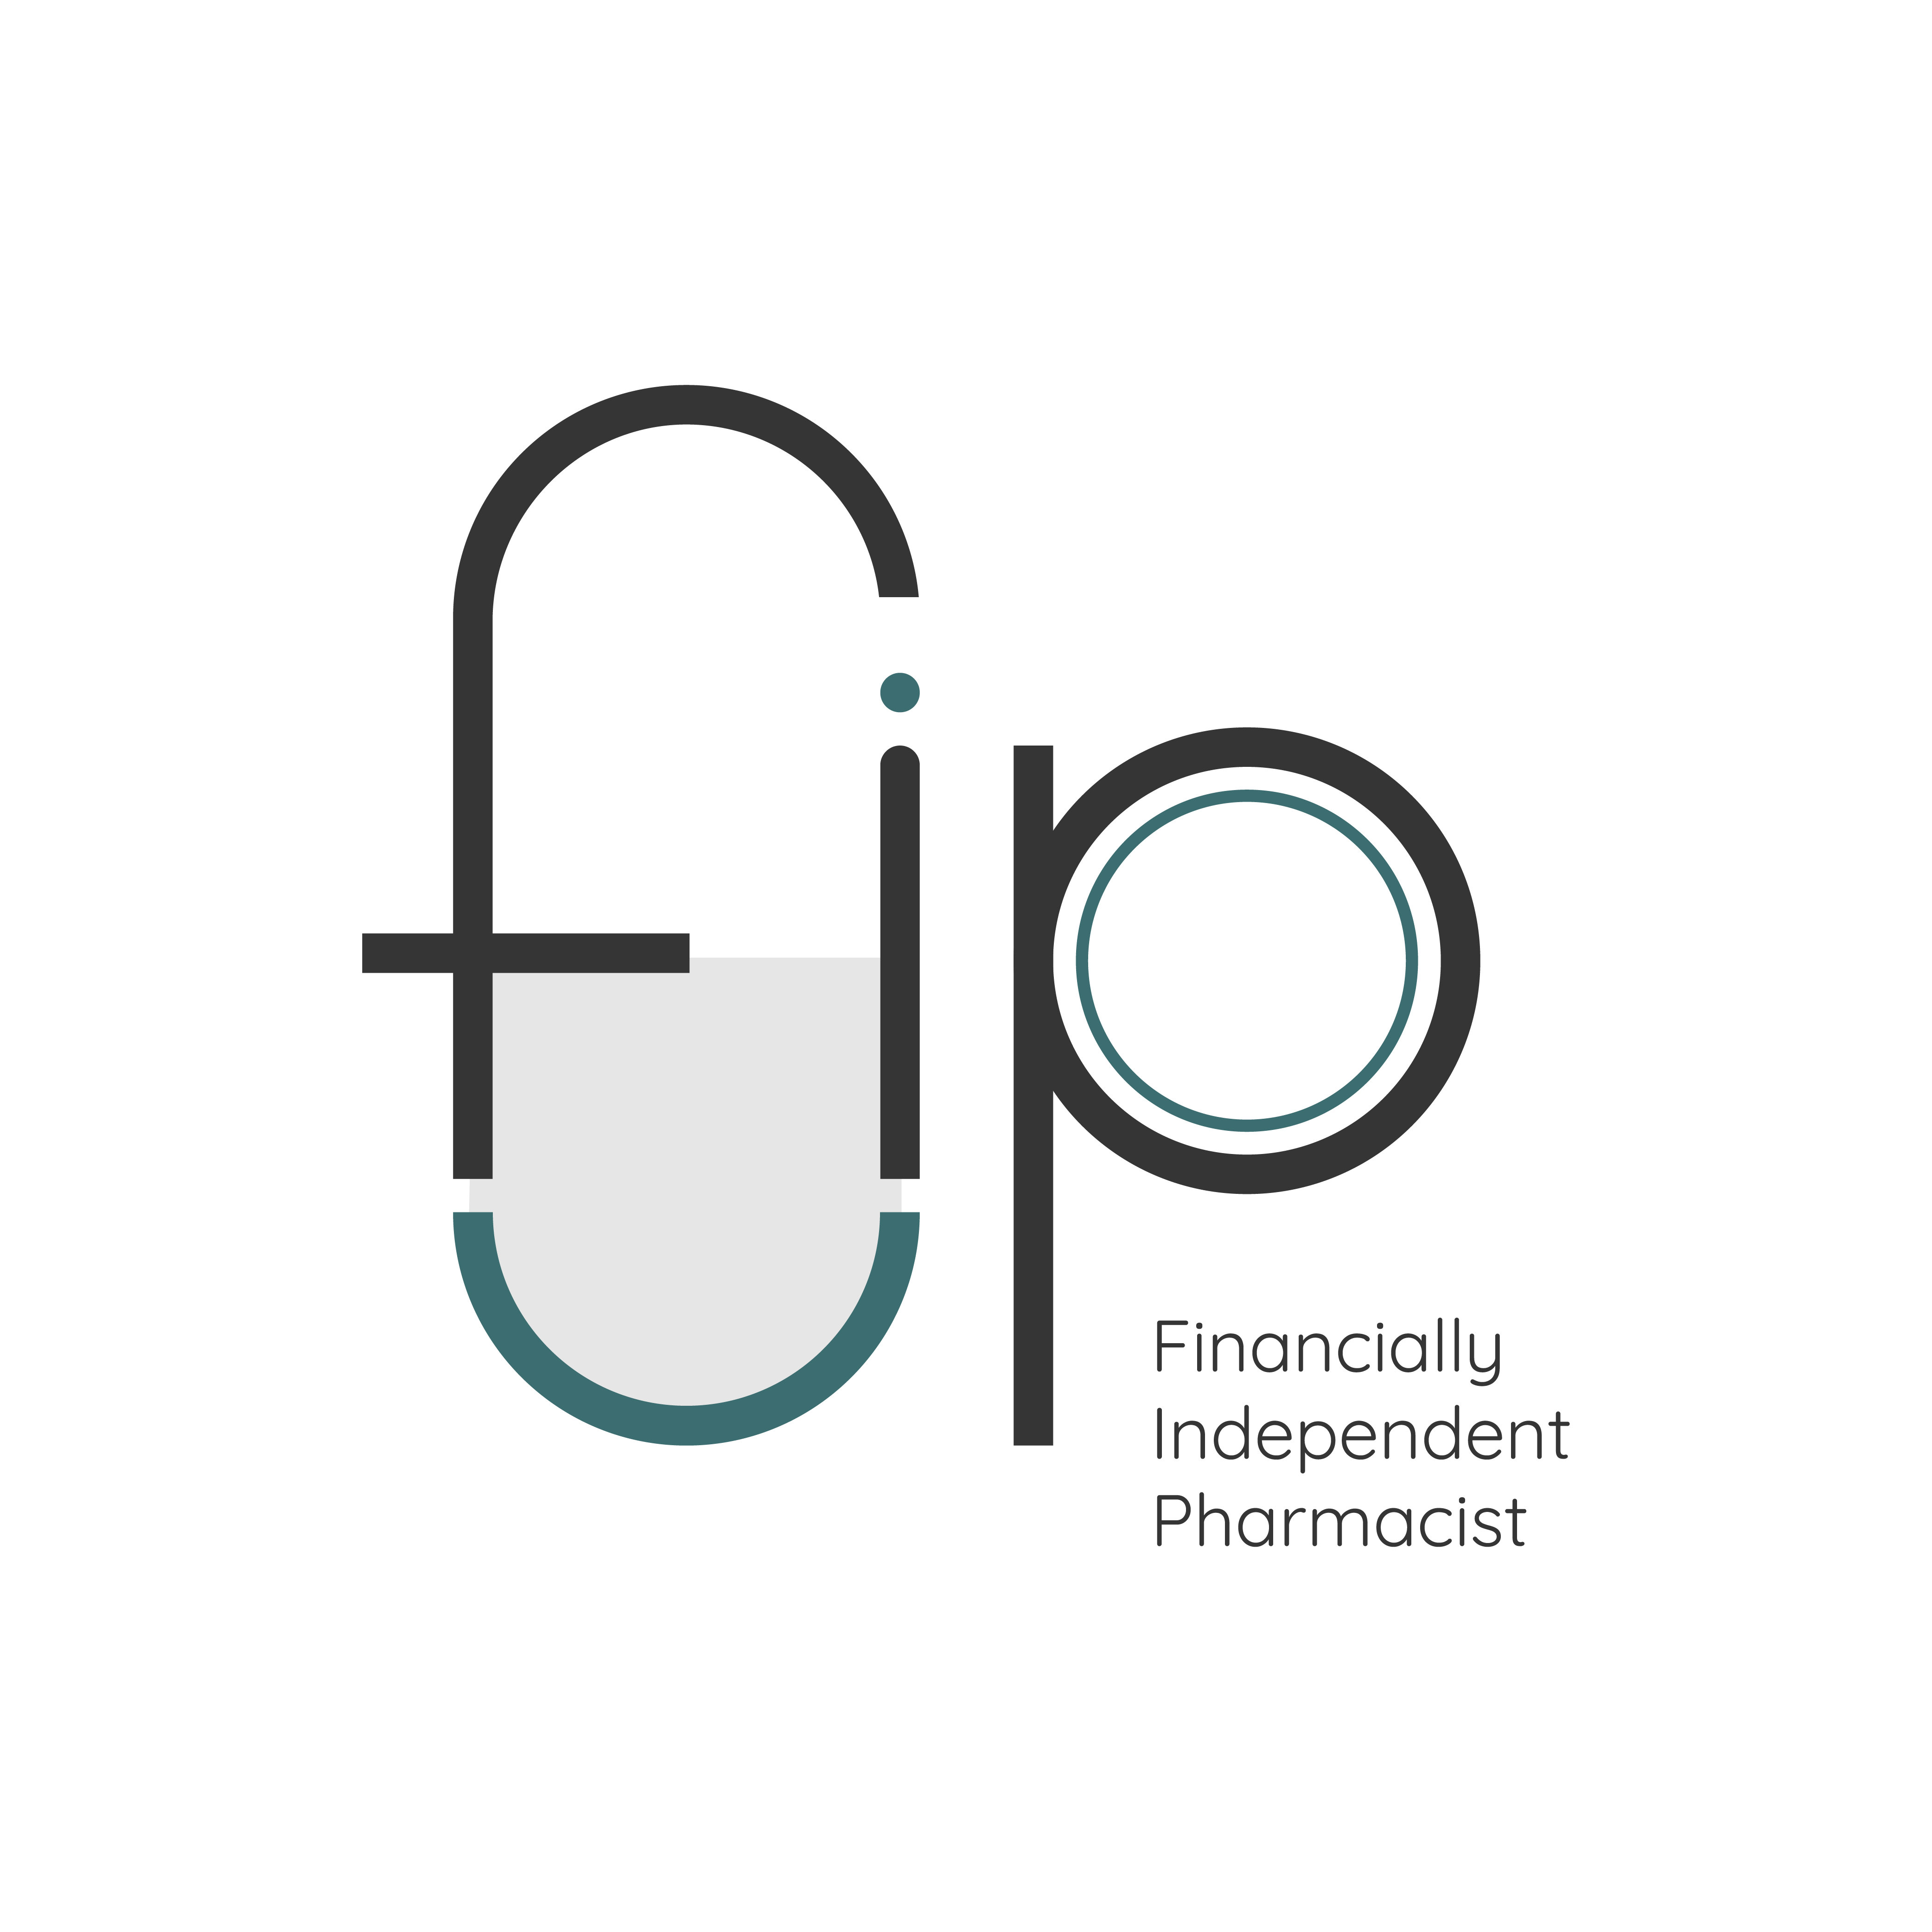 Financially Independent Pharmacist